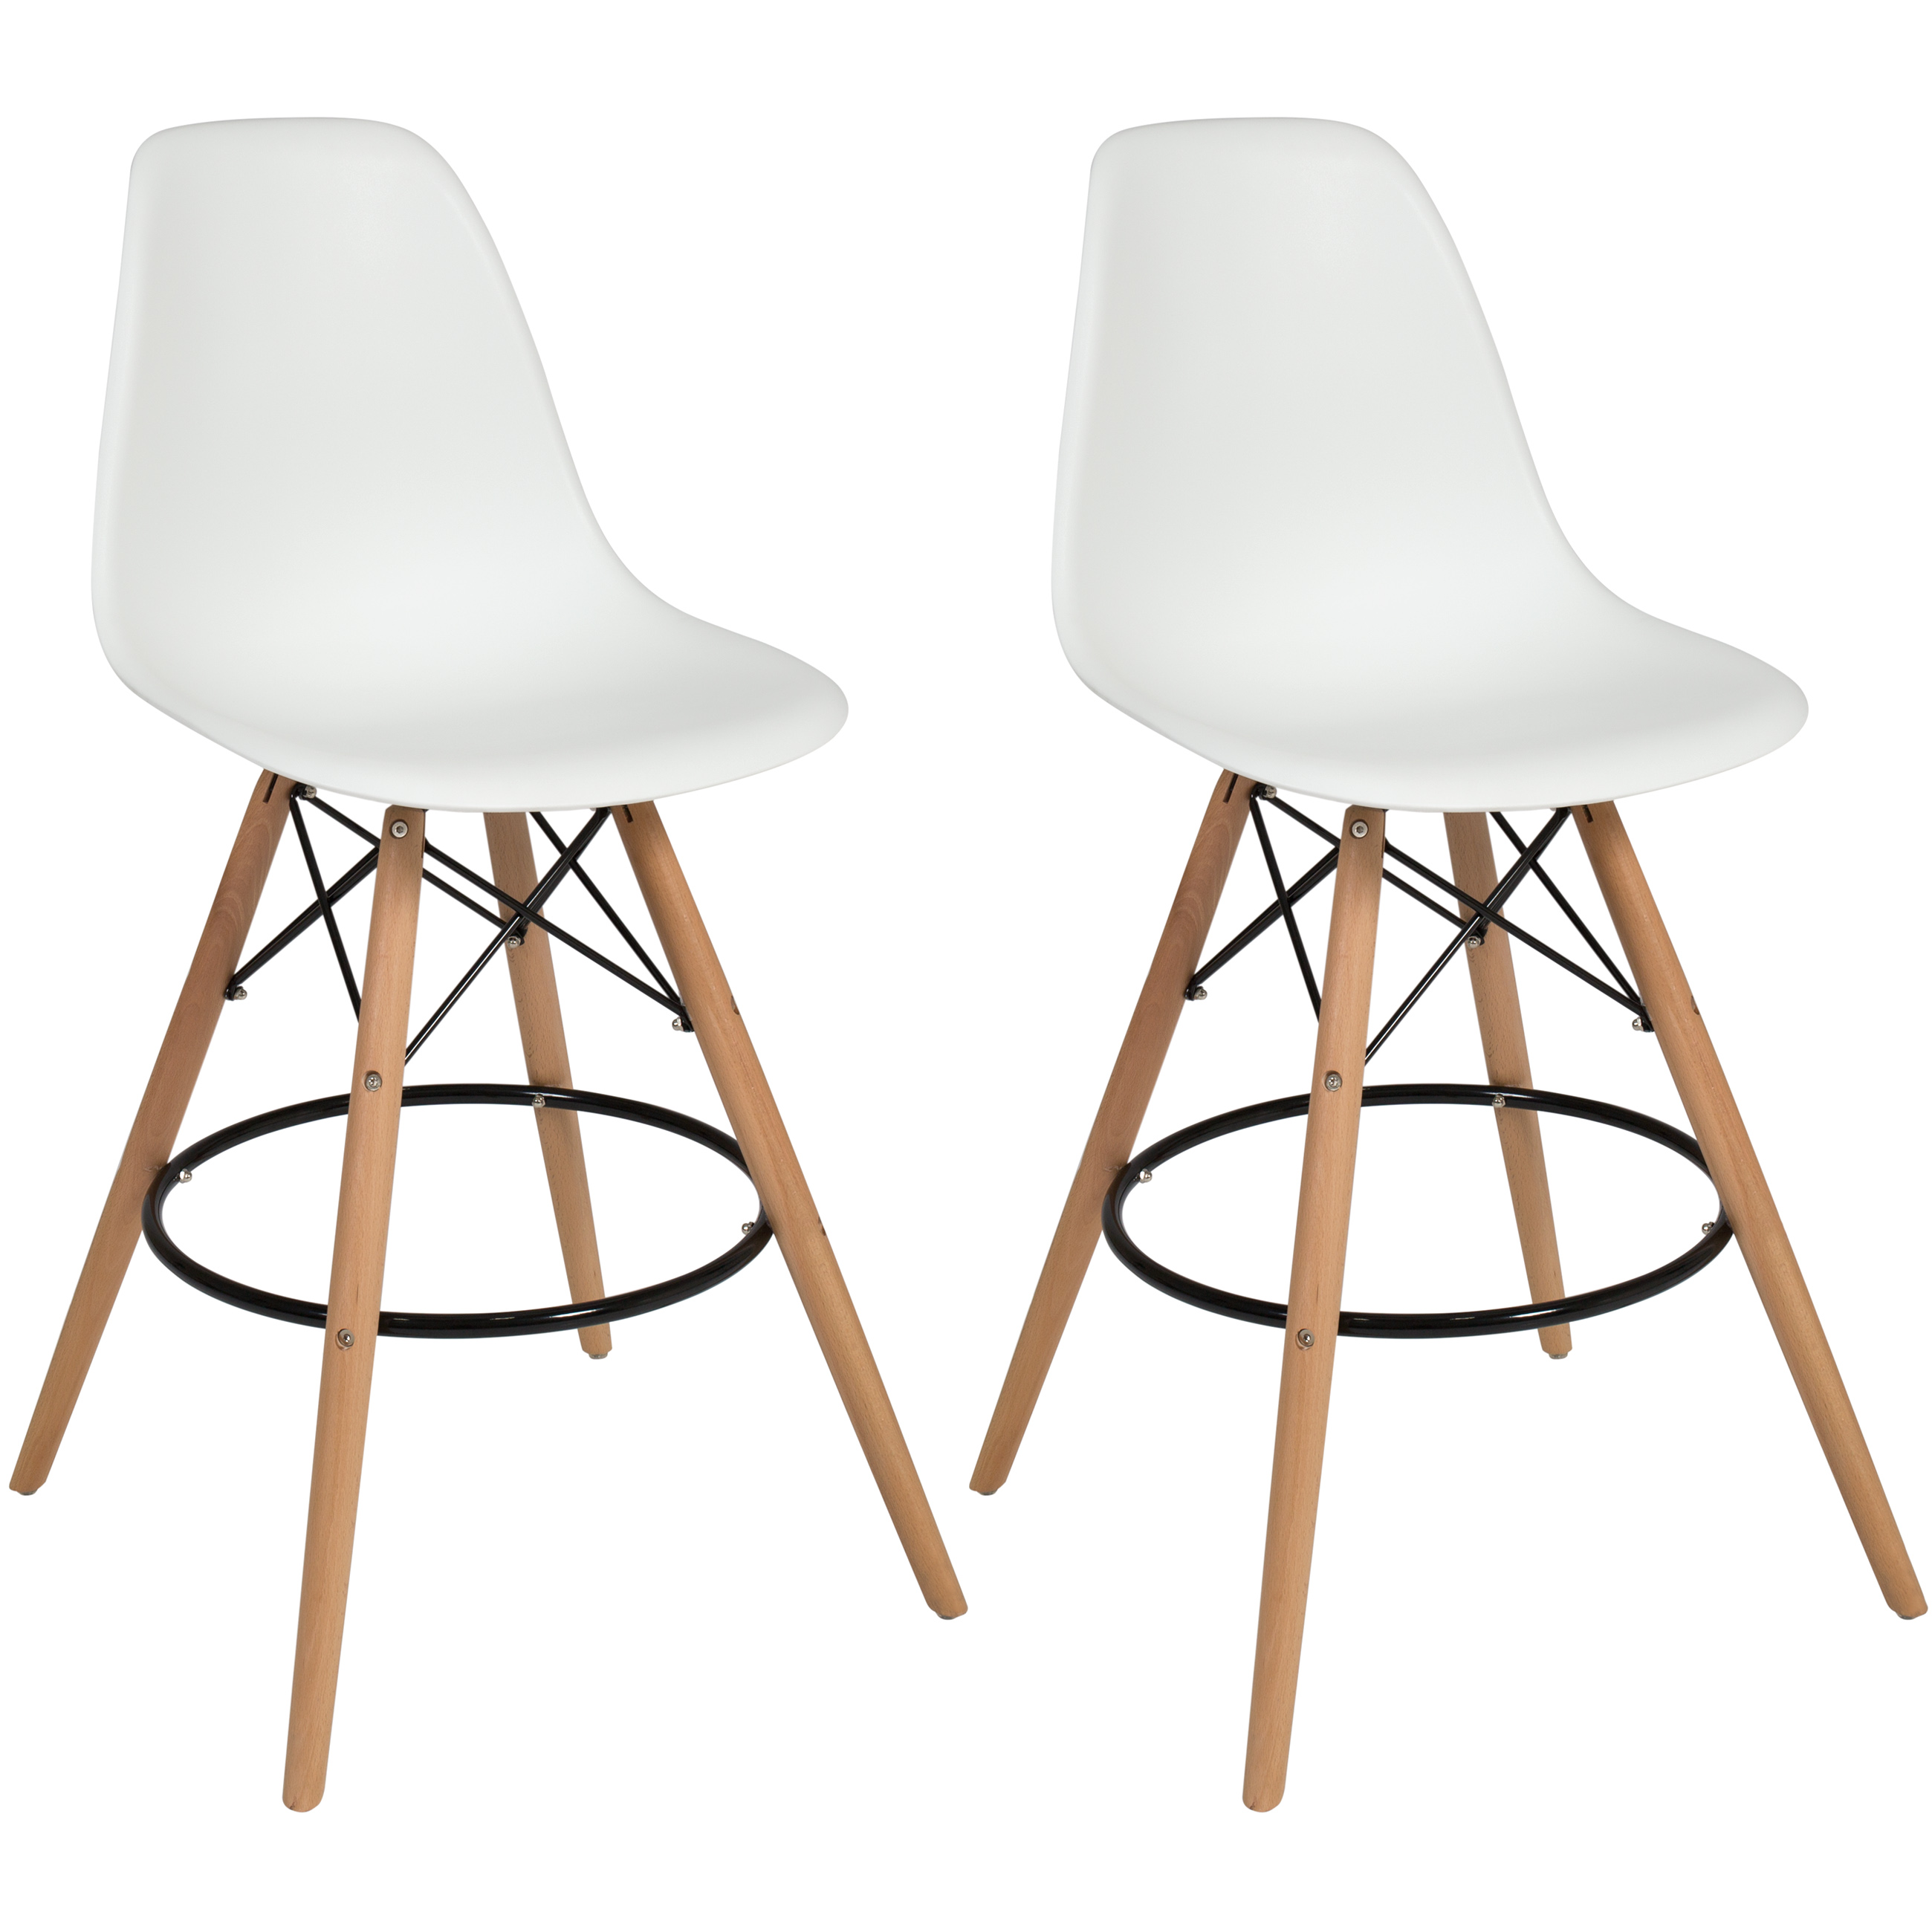 Best Choice Products Set Of 2 Mid Century Modern Eames Style Counter Stools  W/ Wooden